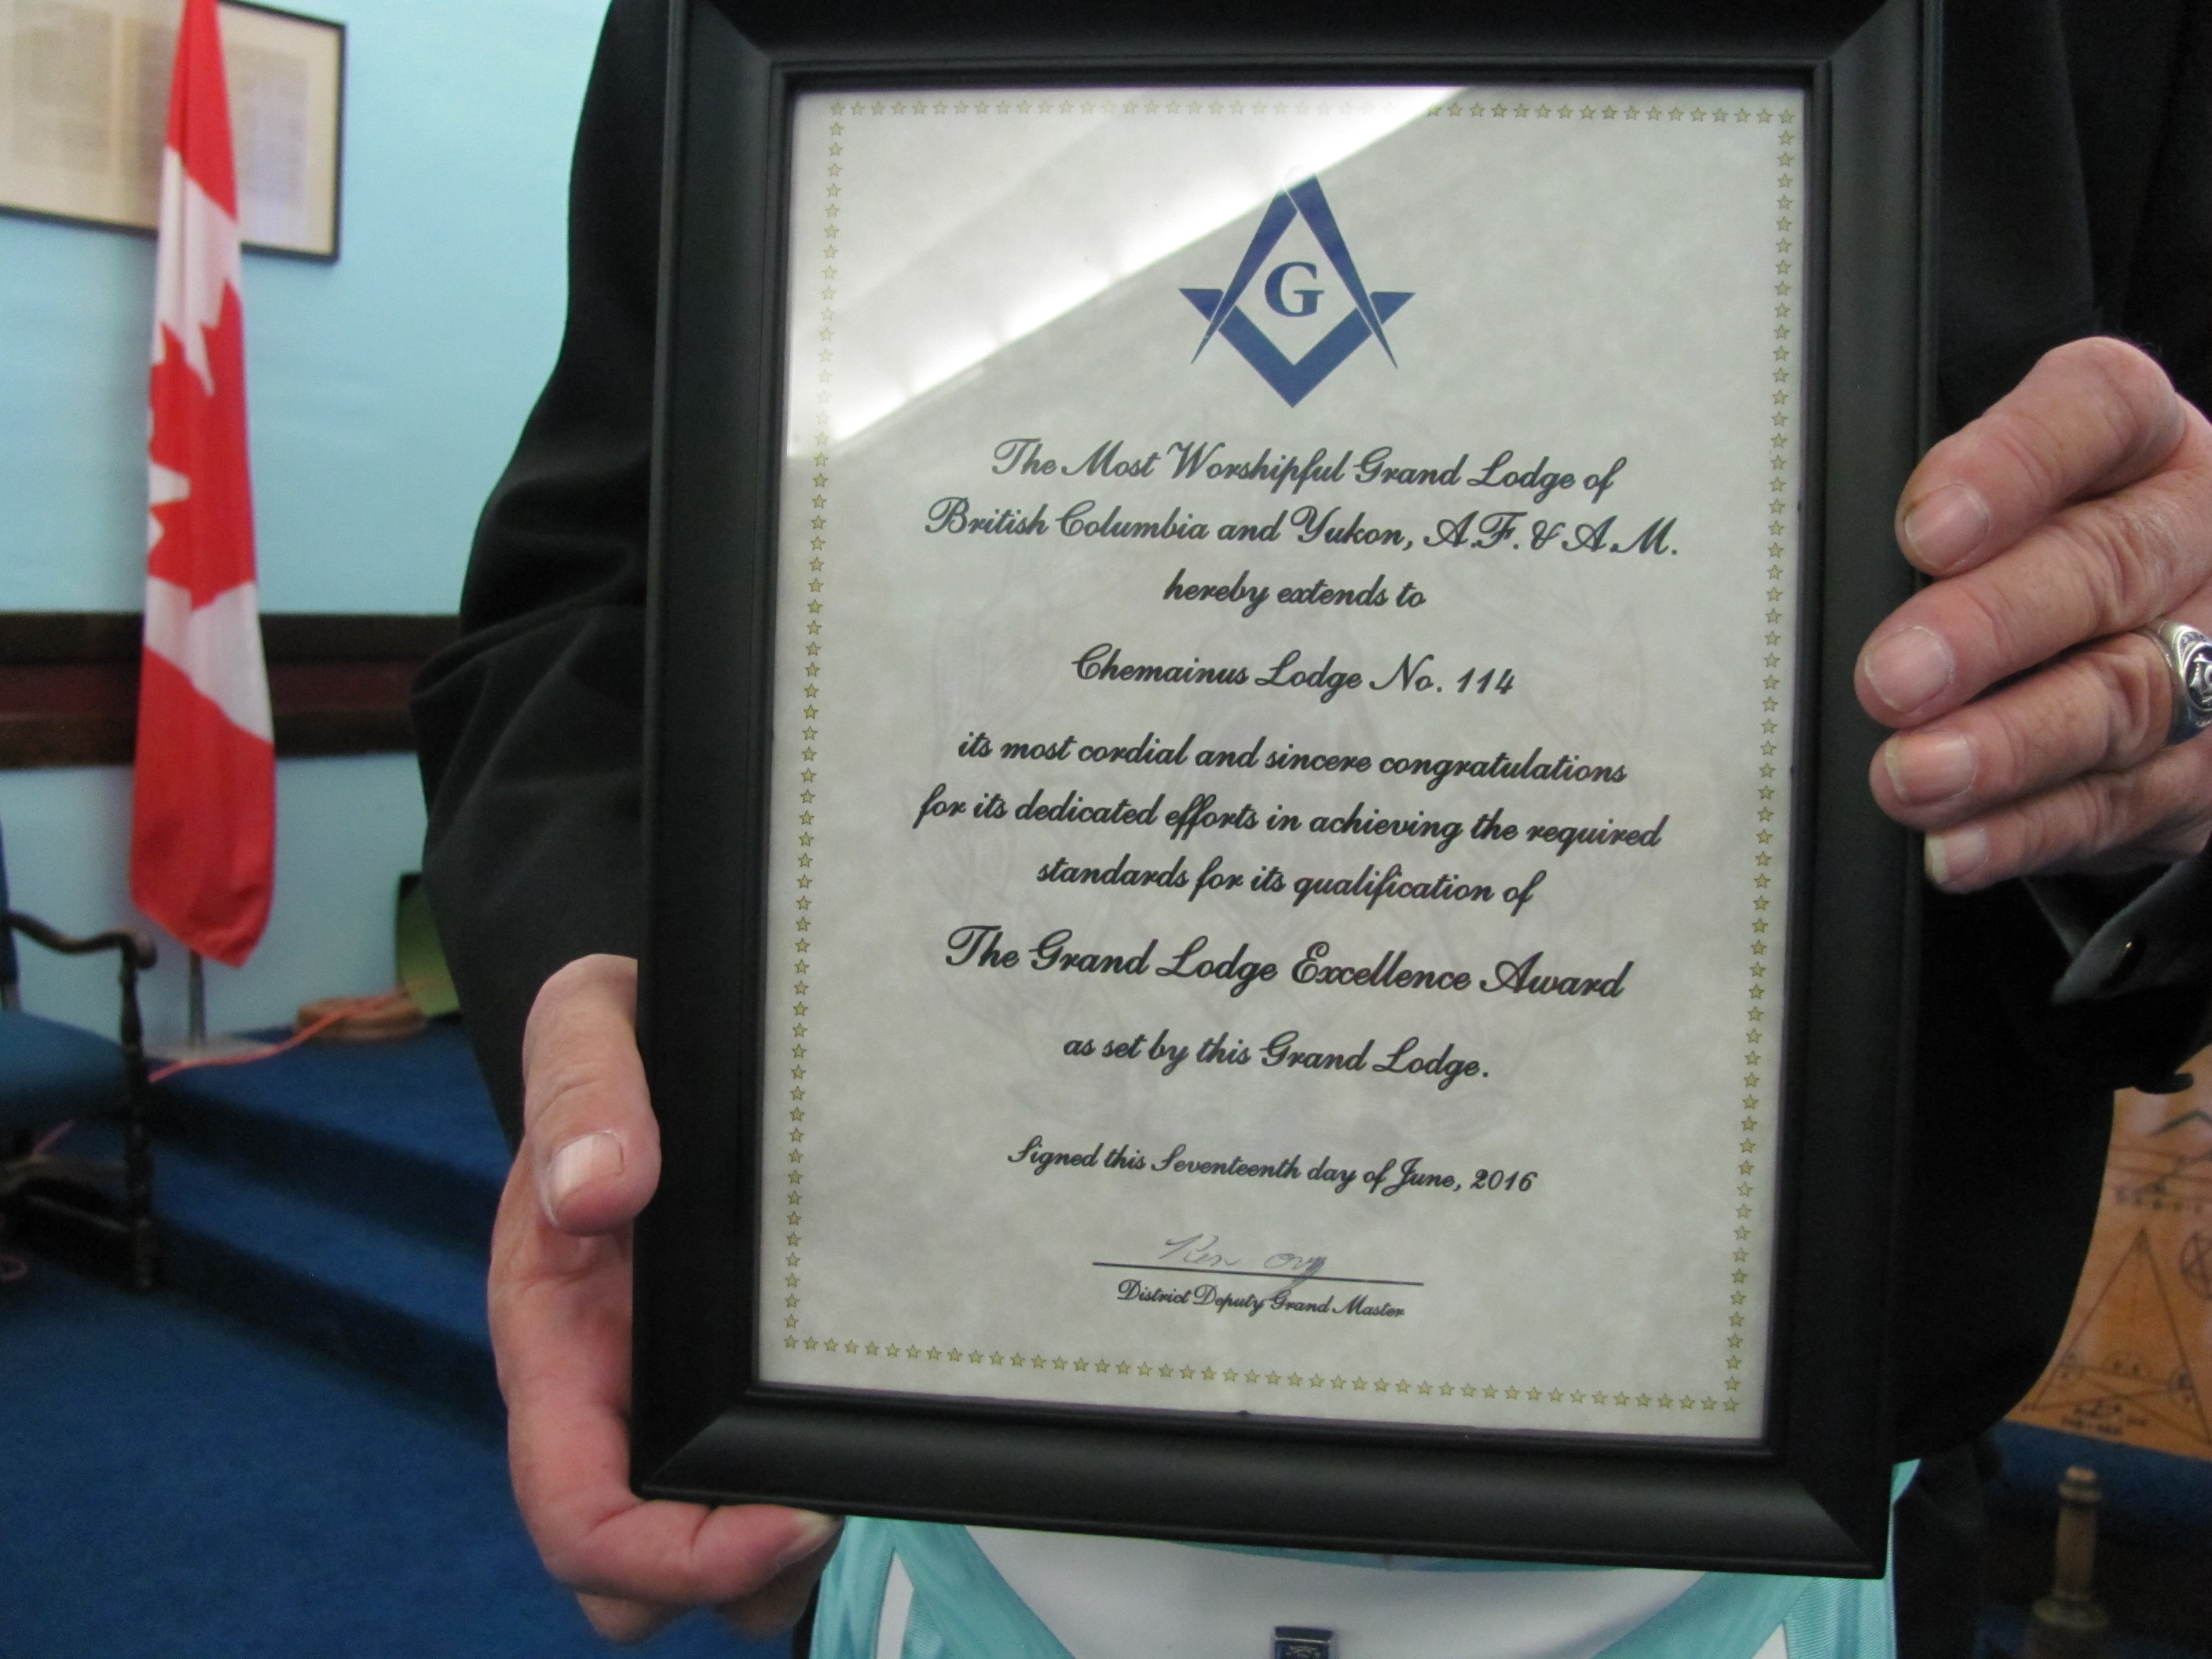 2016 Grand Lodge Excellence Award